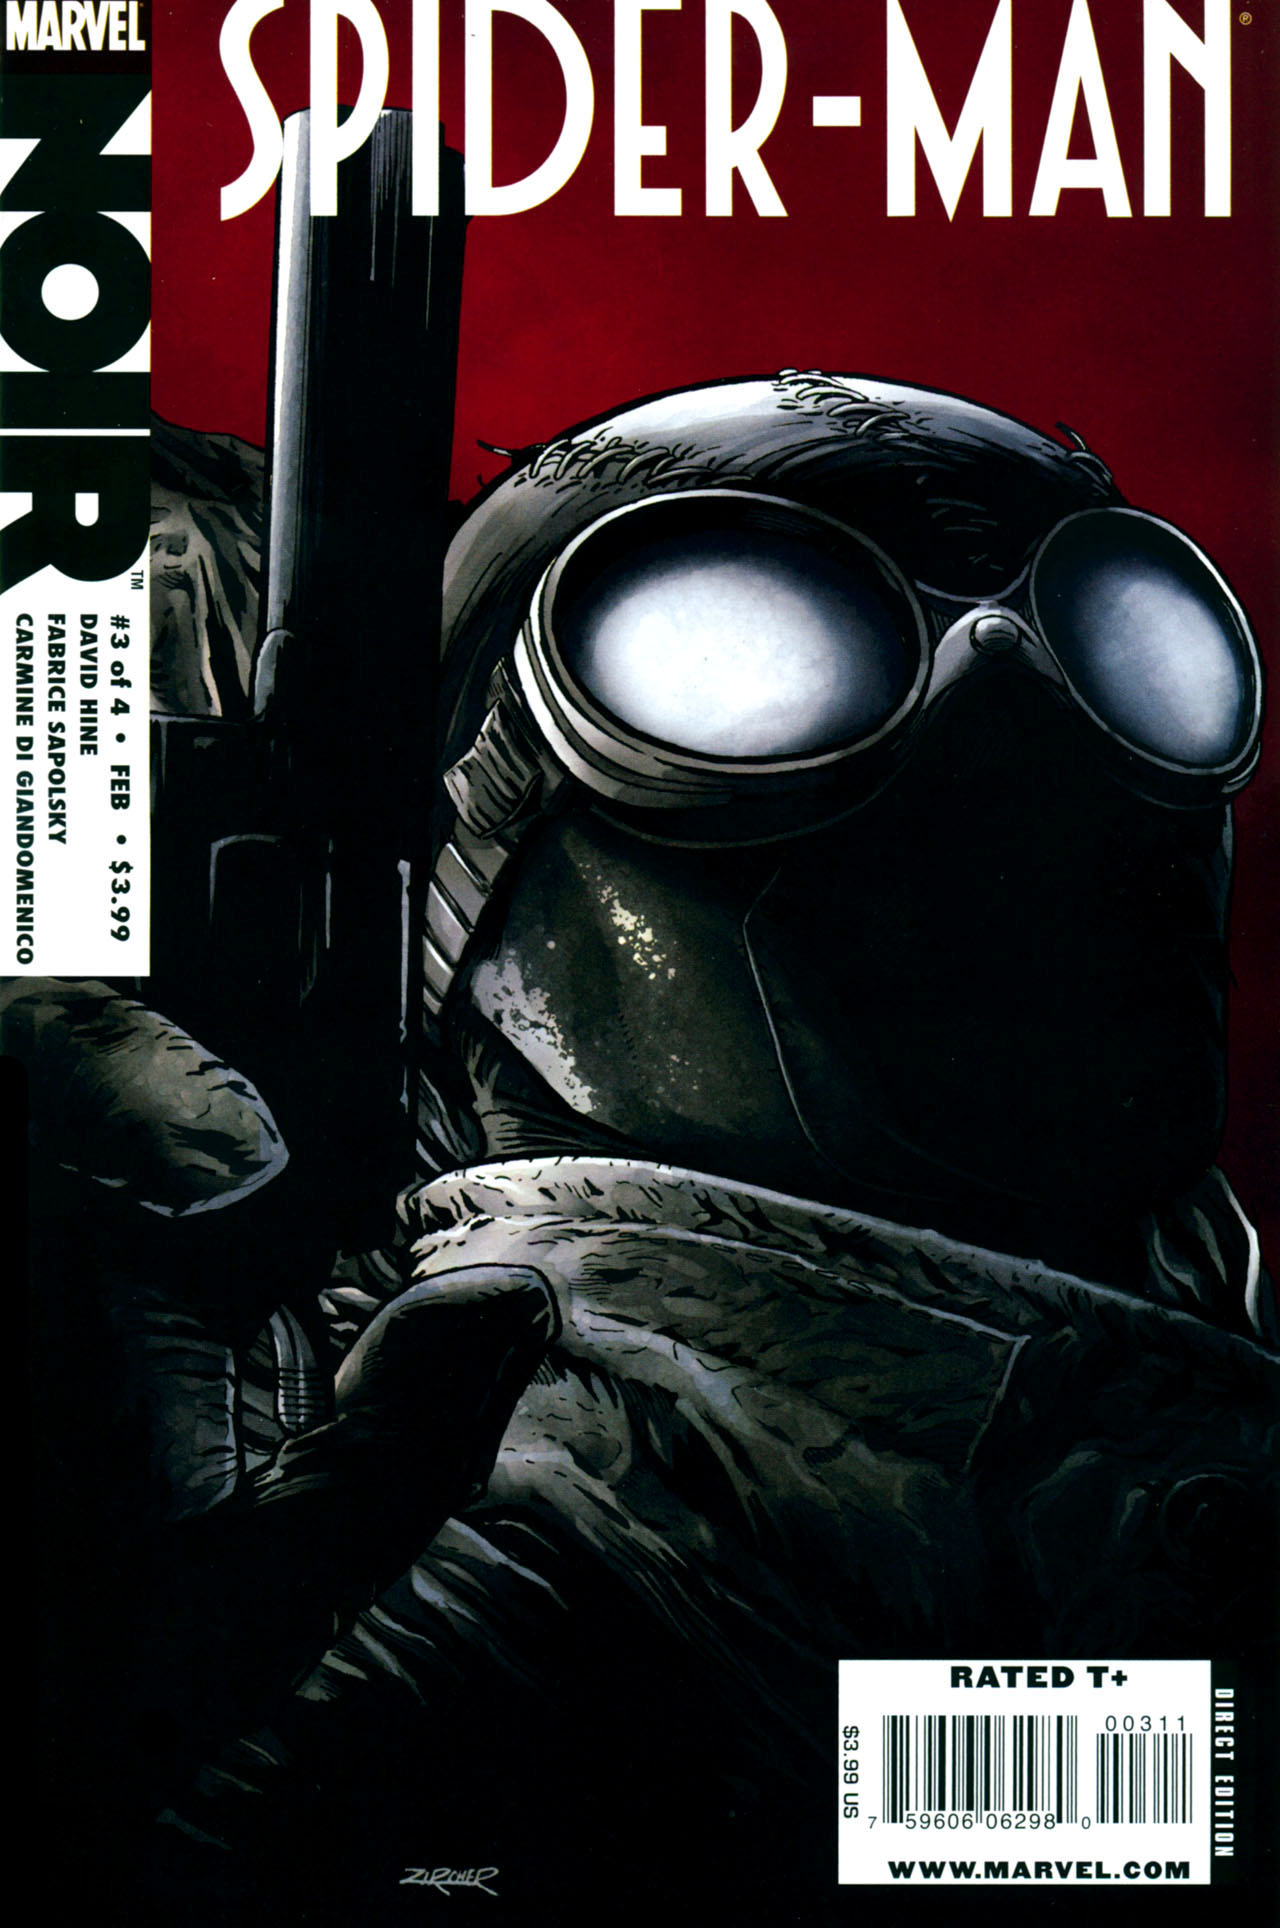 spider-man noir vol 1 3 | marvel database | fandom poweredwikia